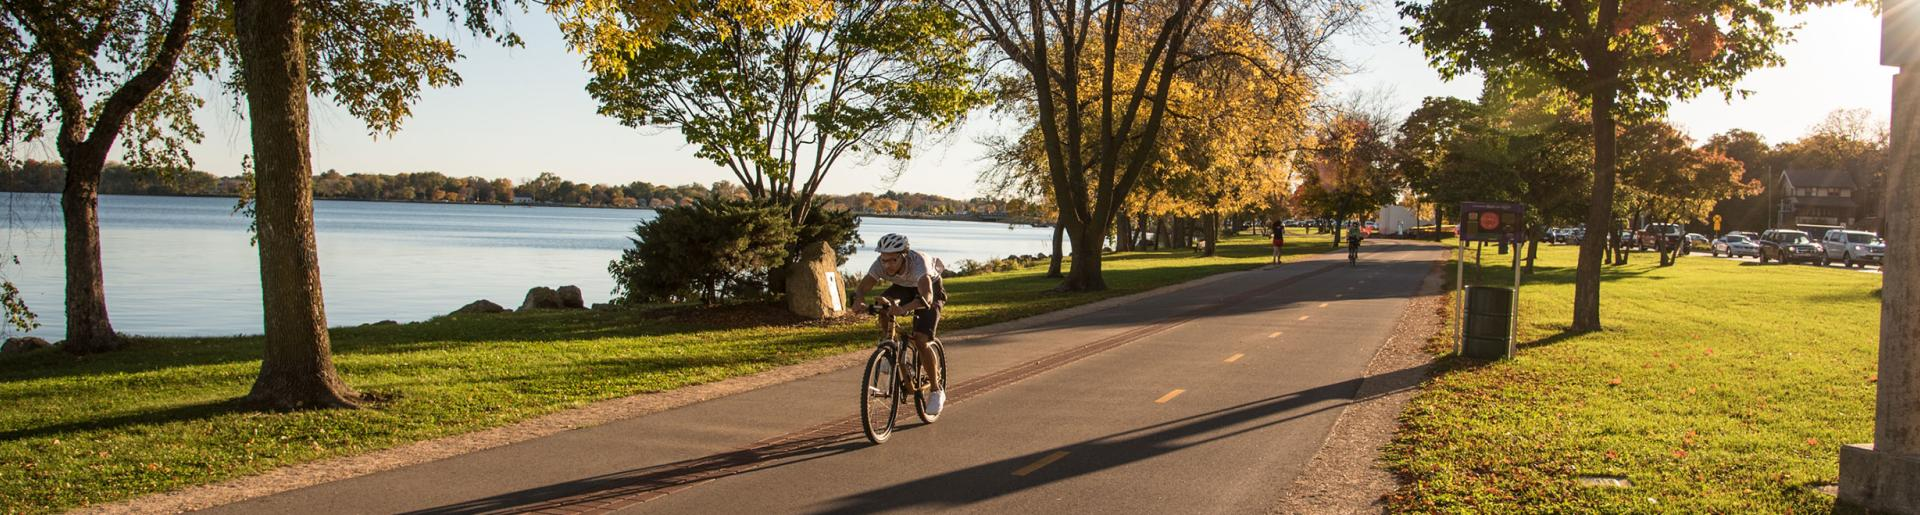 Biking & Hiking | Things to do in Madison, WI on madison bus map, madison park map, madison river map, madison bike trail map, madison street map, madison bike route map,